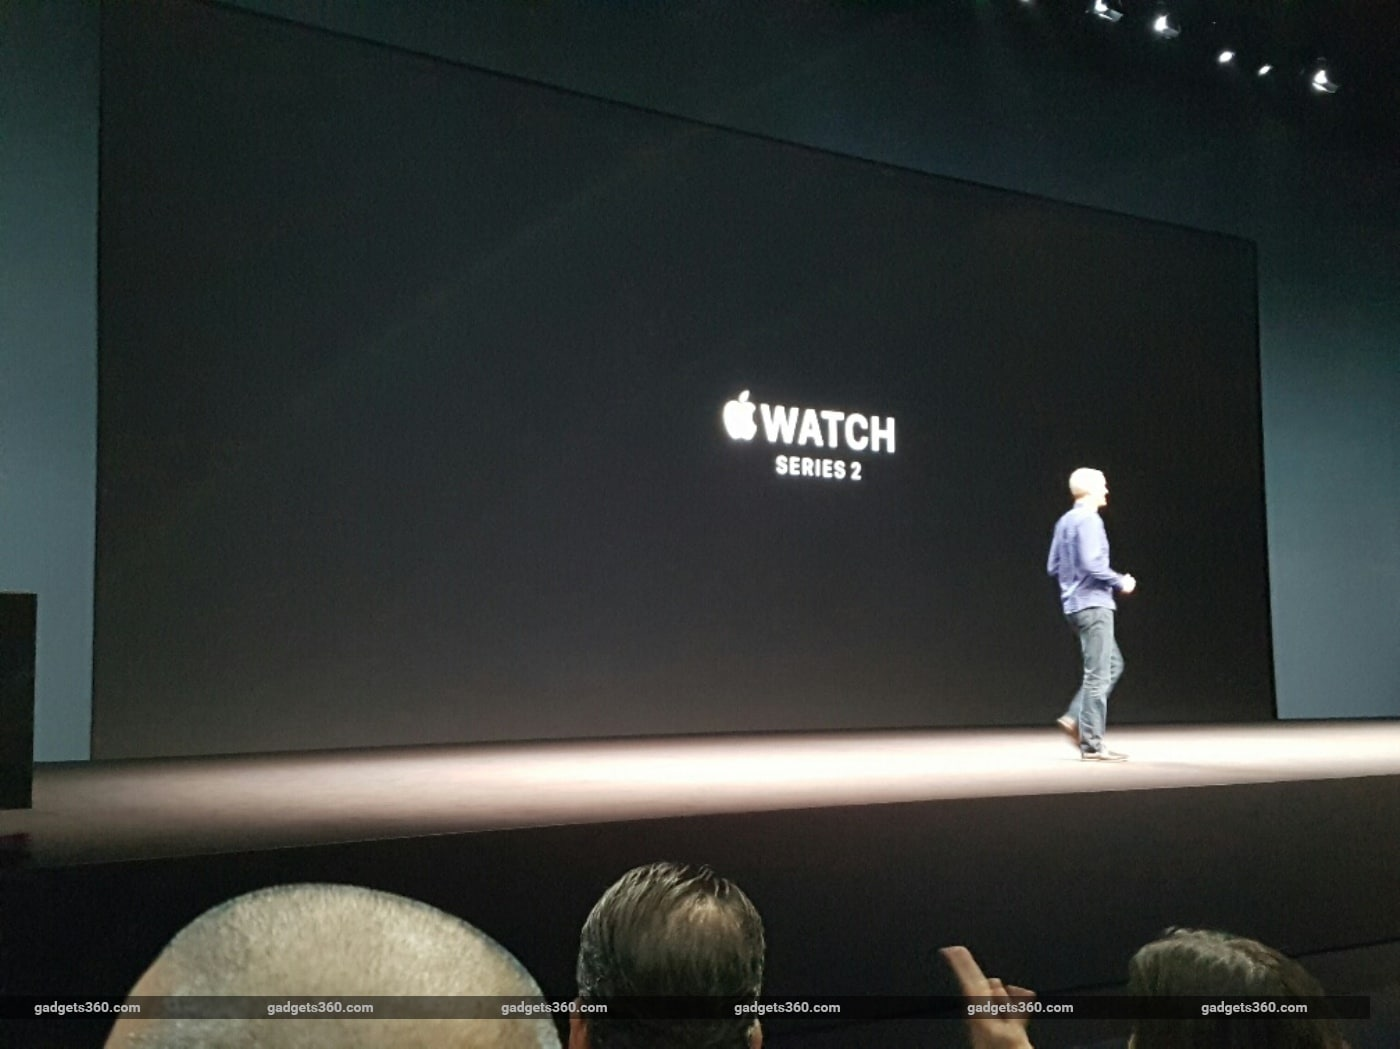 There is a new apple watch watch series 2 it s water proof to 50 metres